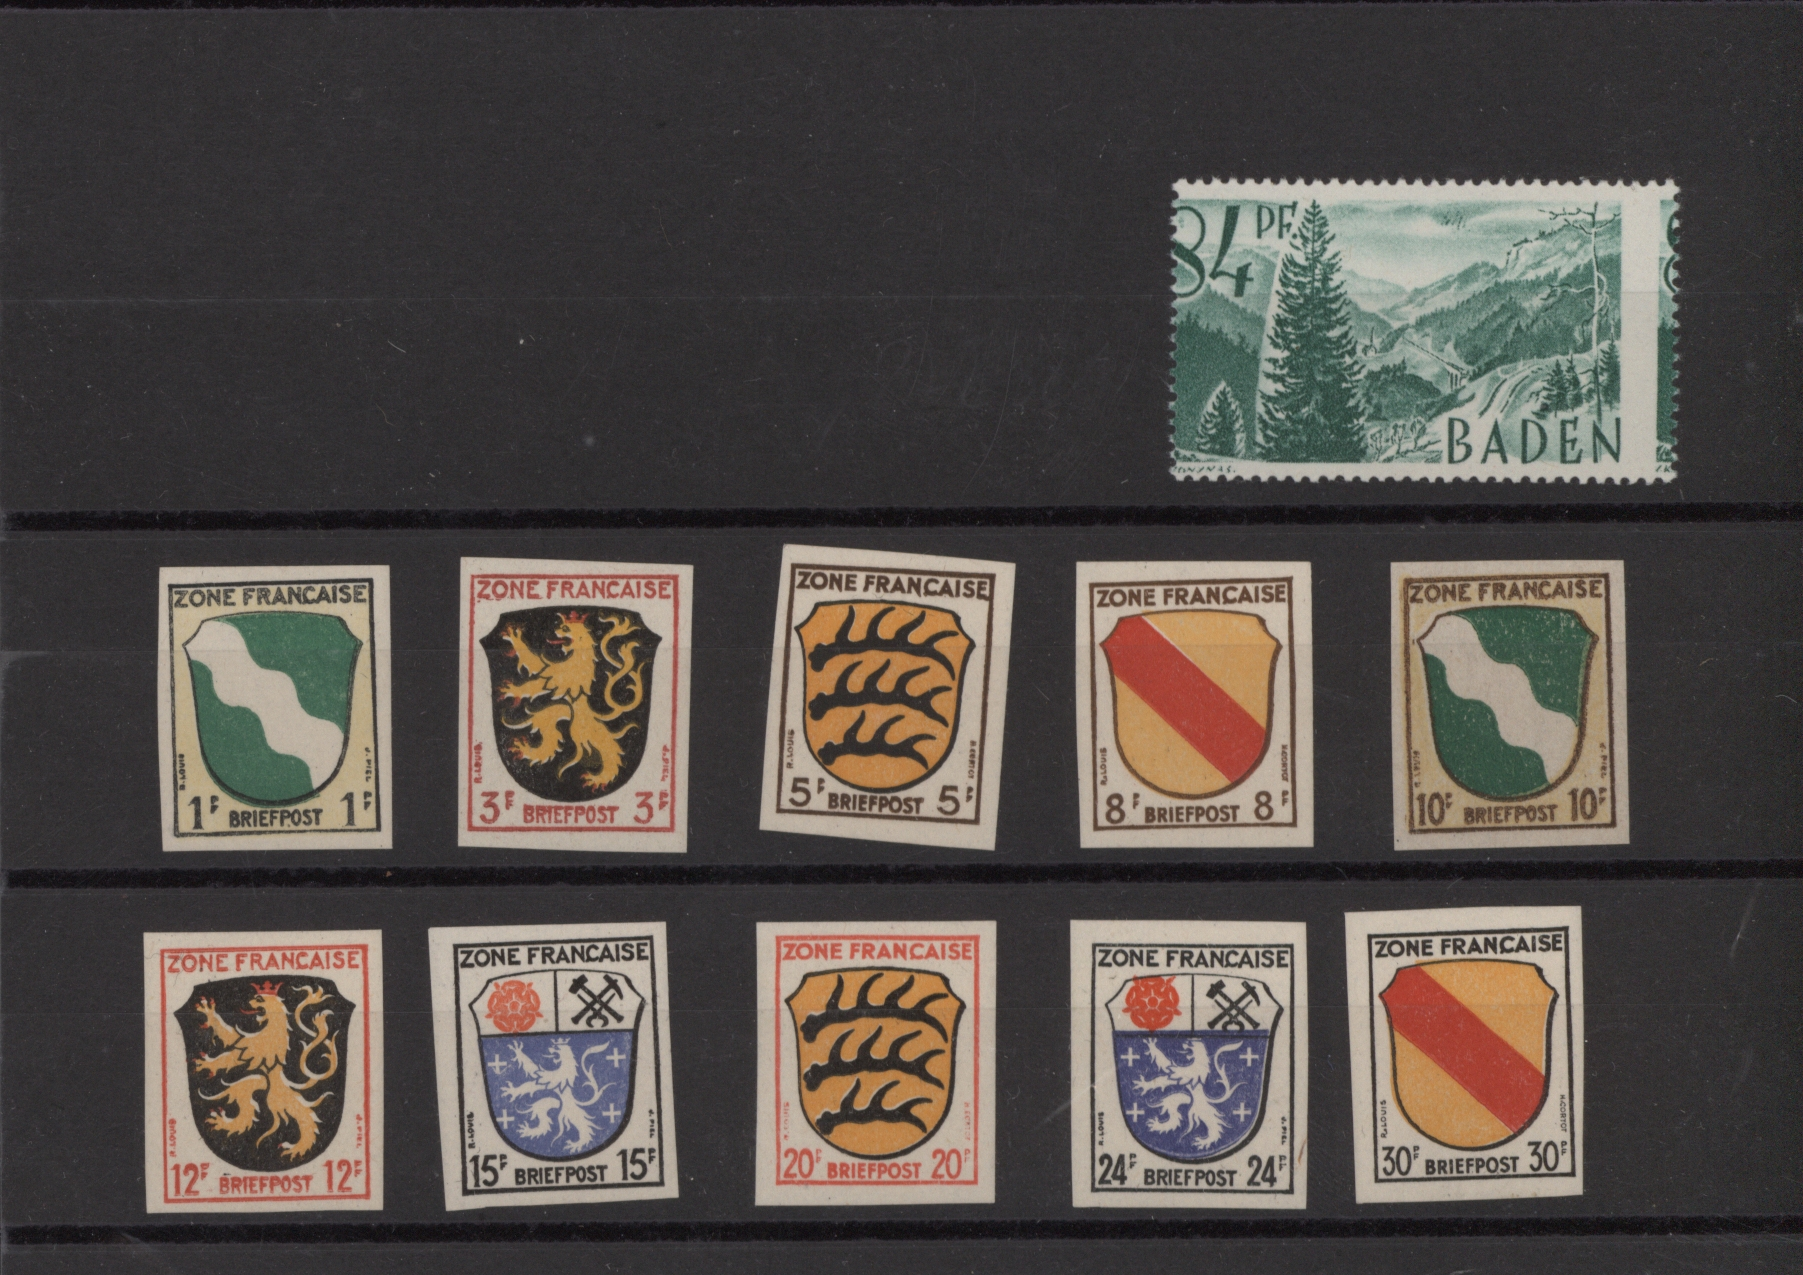 Lot 26108 - nachlässe  -  Auktionshaus Christoph Gärtner GmbH & Co. KG Sale #46 Gollcetions Germany - including the suplement